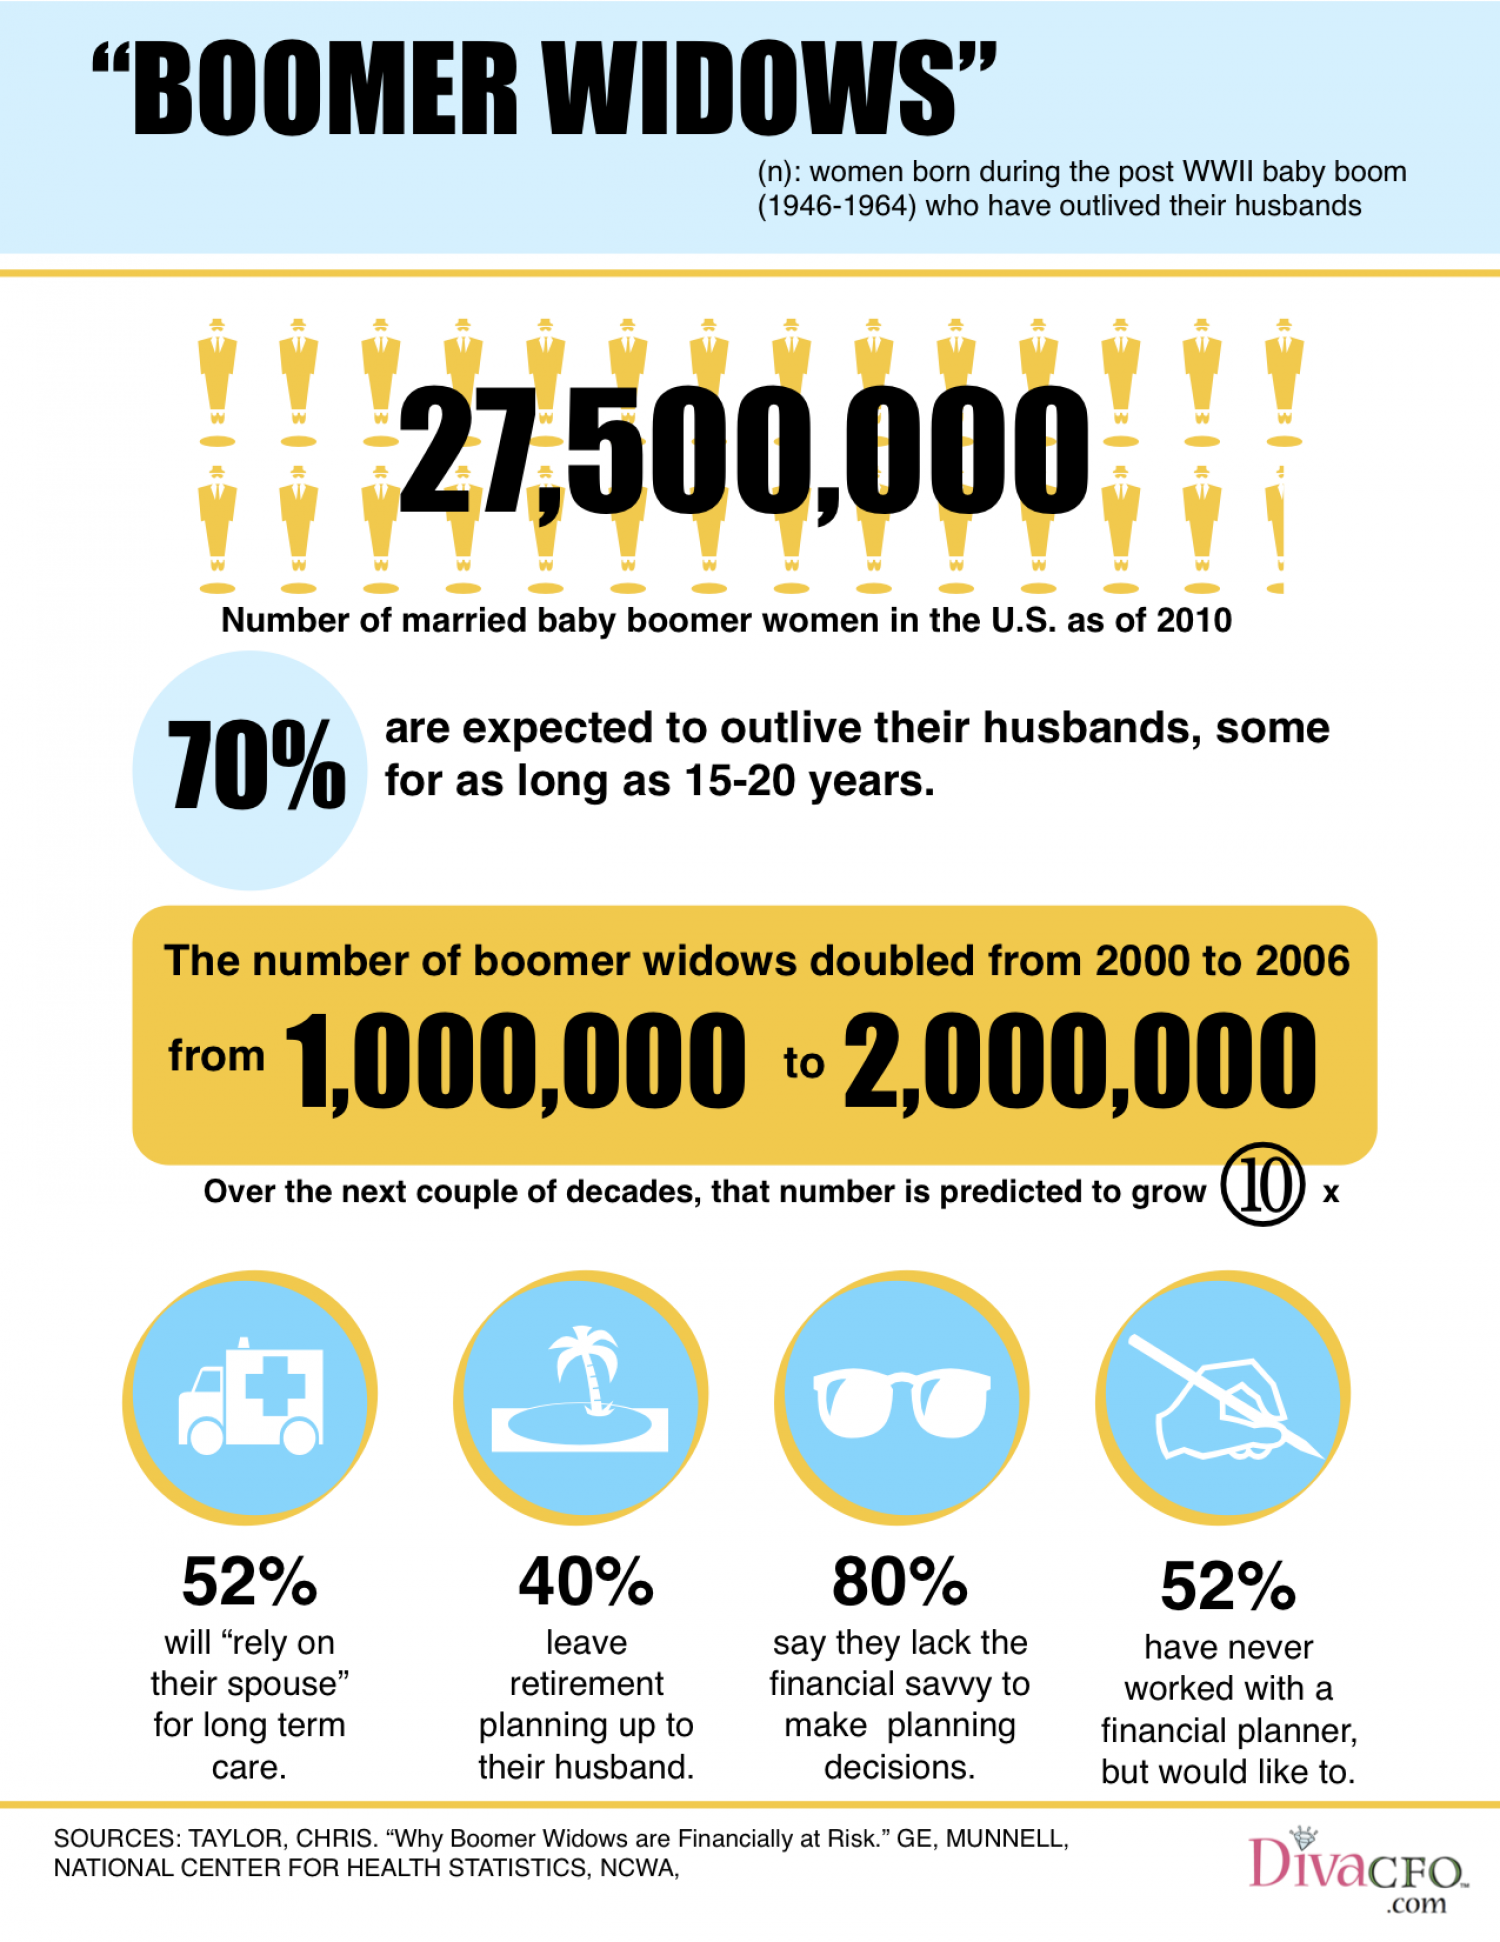 Boomer Widows are Financially at Risk Infographic